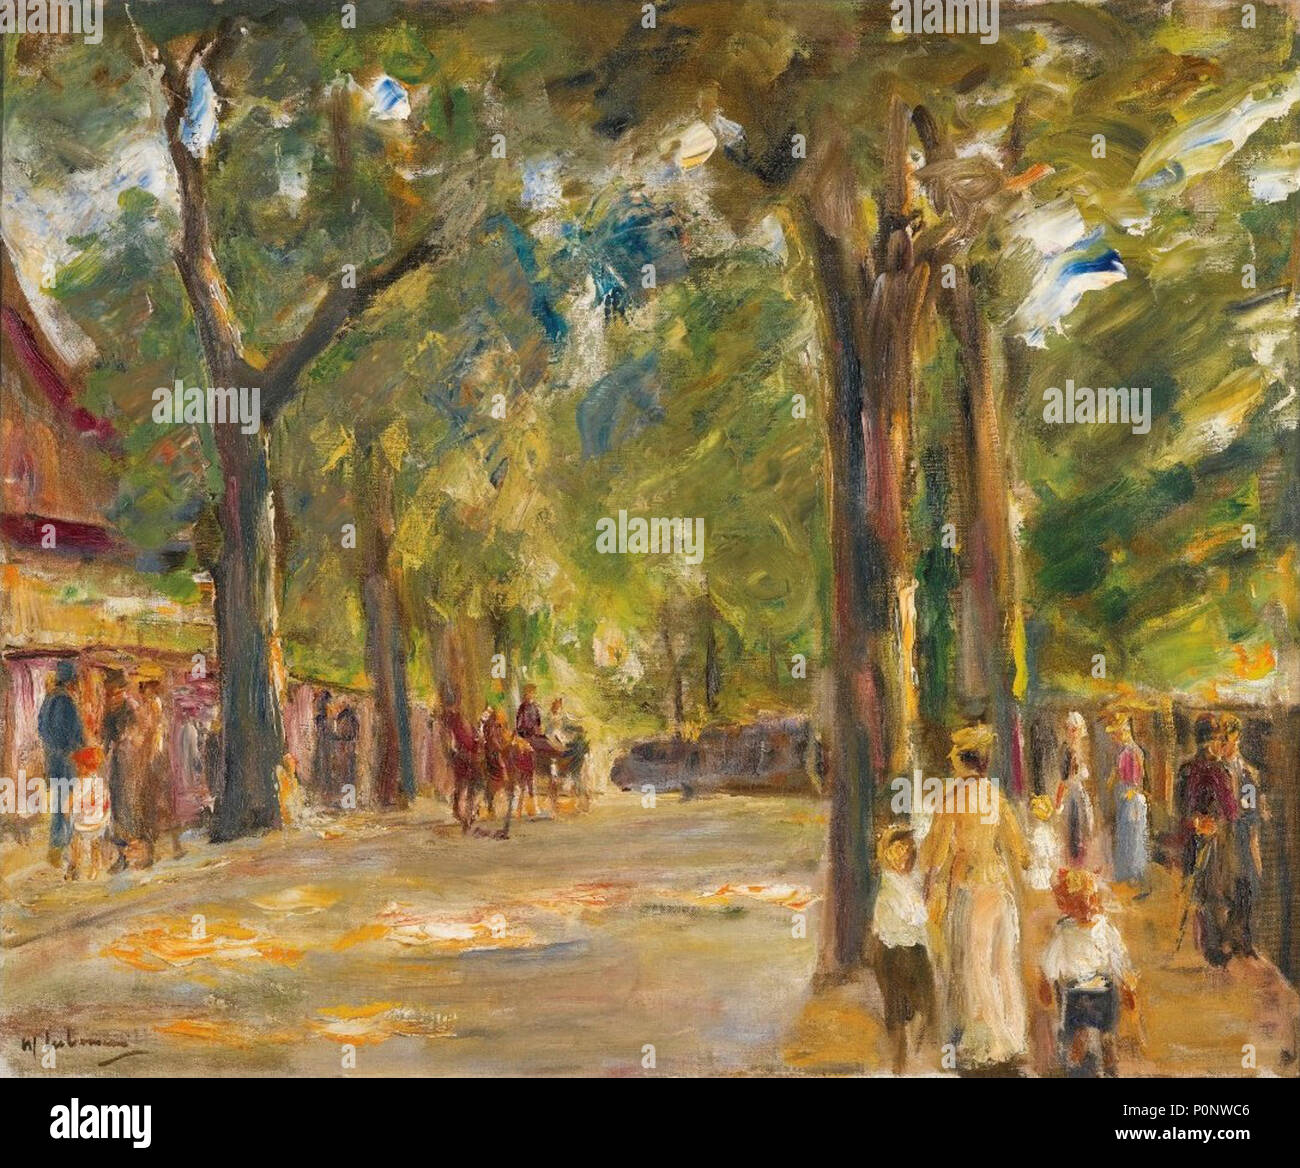 'Figures on the Grosse Seestrasse in Wannsee' by Max Liebermann, c 1920 - Stock Image